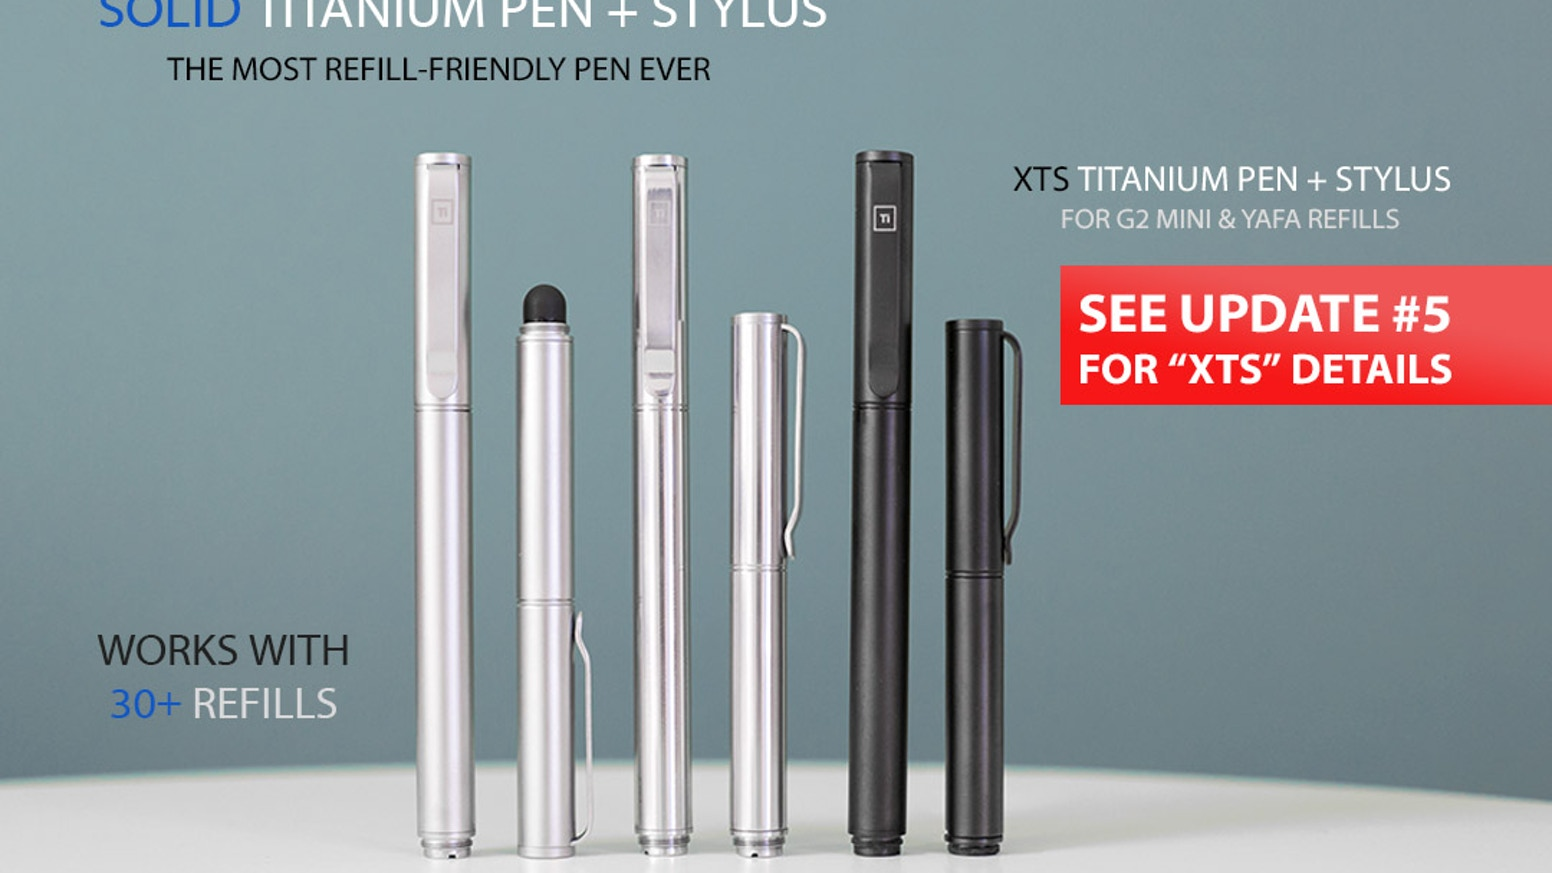 World's First Titanium Pen that works with 30+ pens. Mont Blanc, Pilot G2, Cross, Uniball & more + Stylus + Free World-Wide Shipping